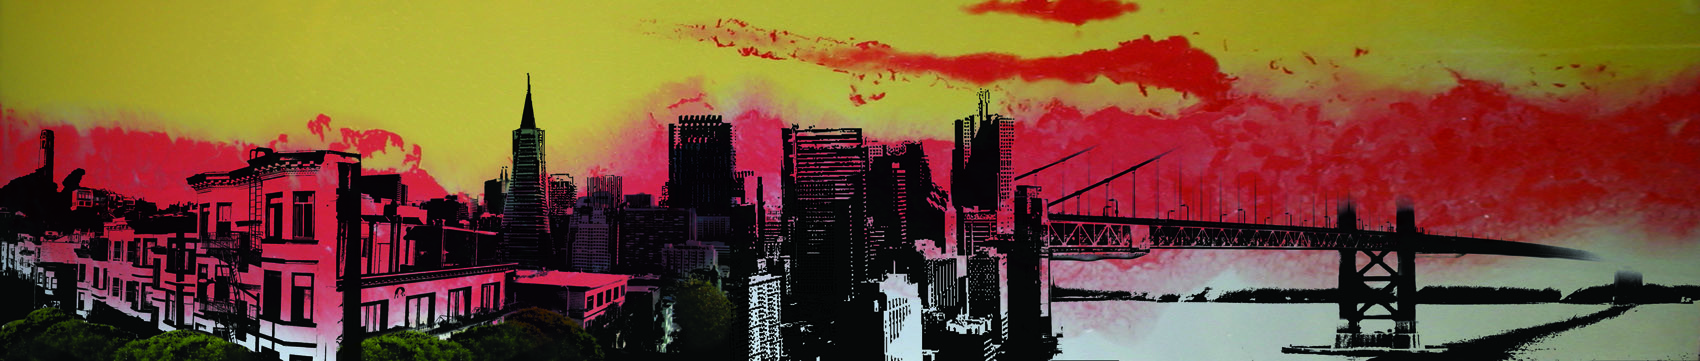 "A Fire In The Sky Above San Francisco, 2009 Mixed Media on Glass 25"" x 80"""